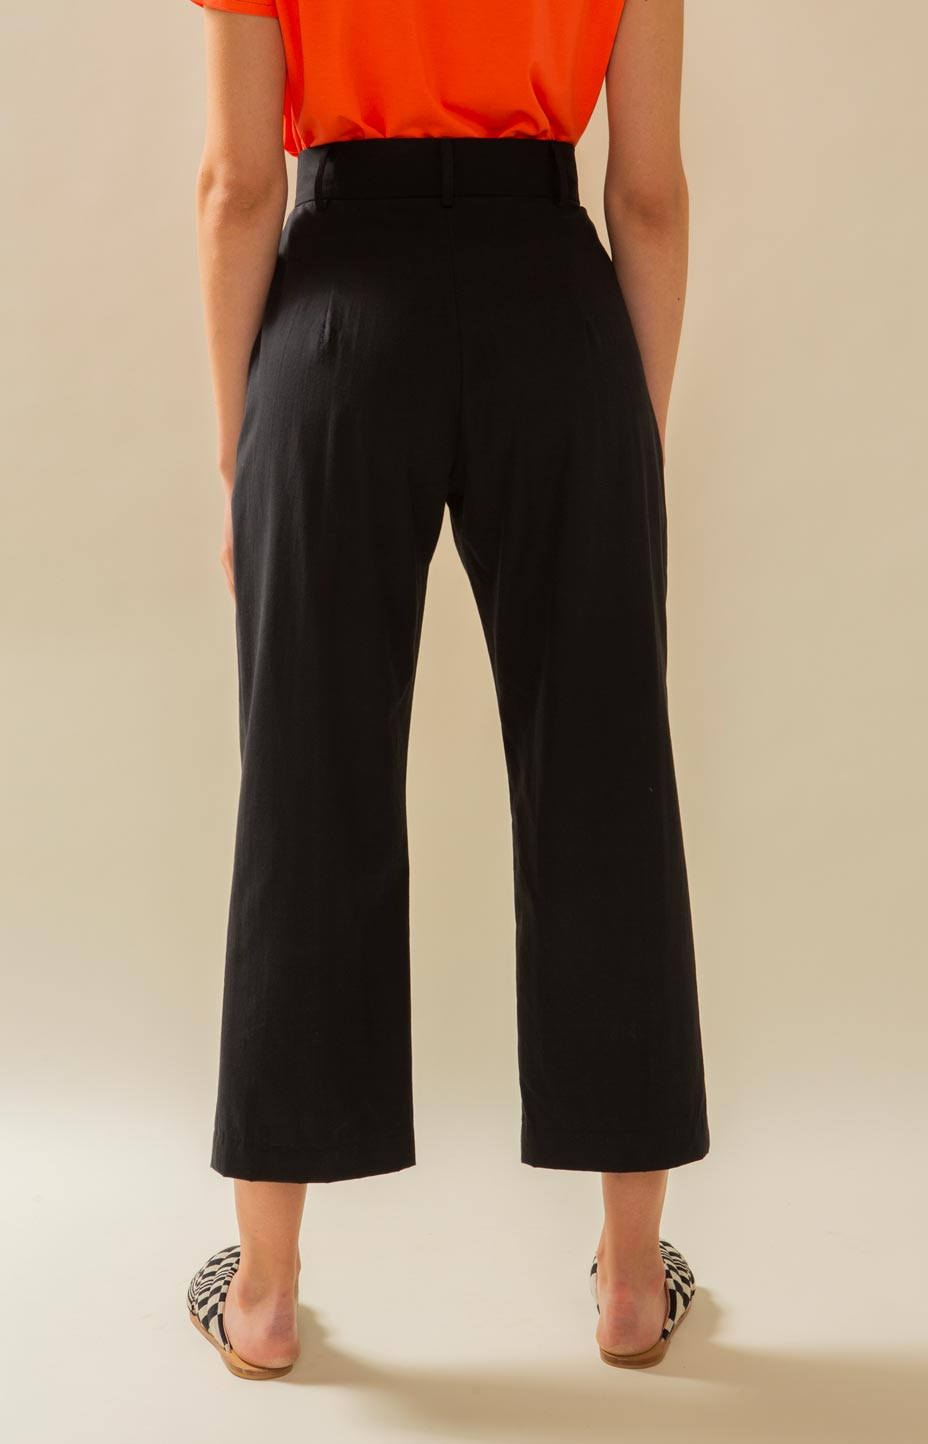 Mya slacks, black high waist pants, TAUKO Design